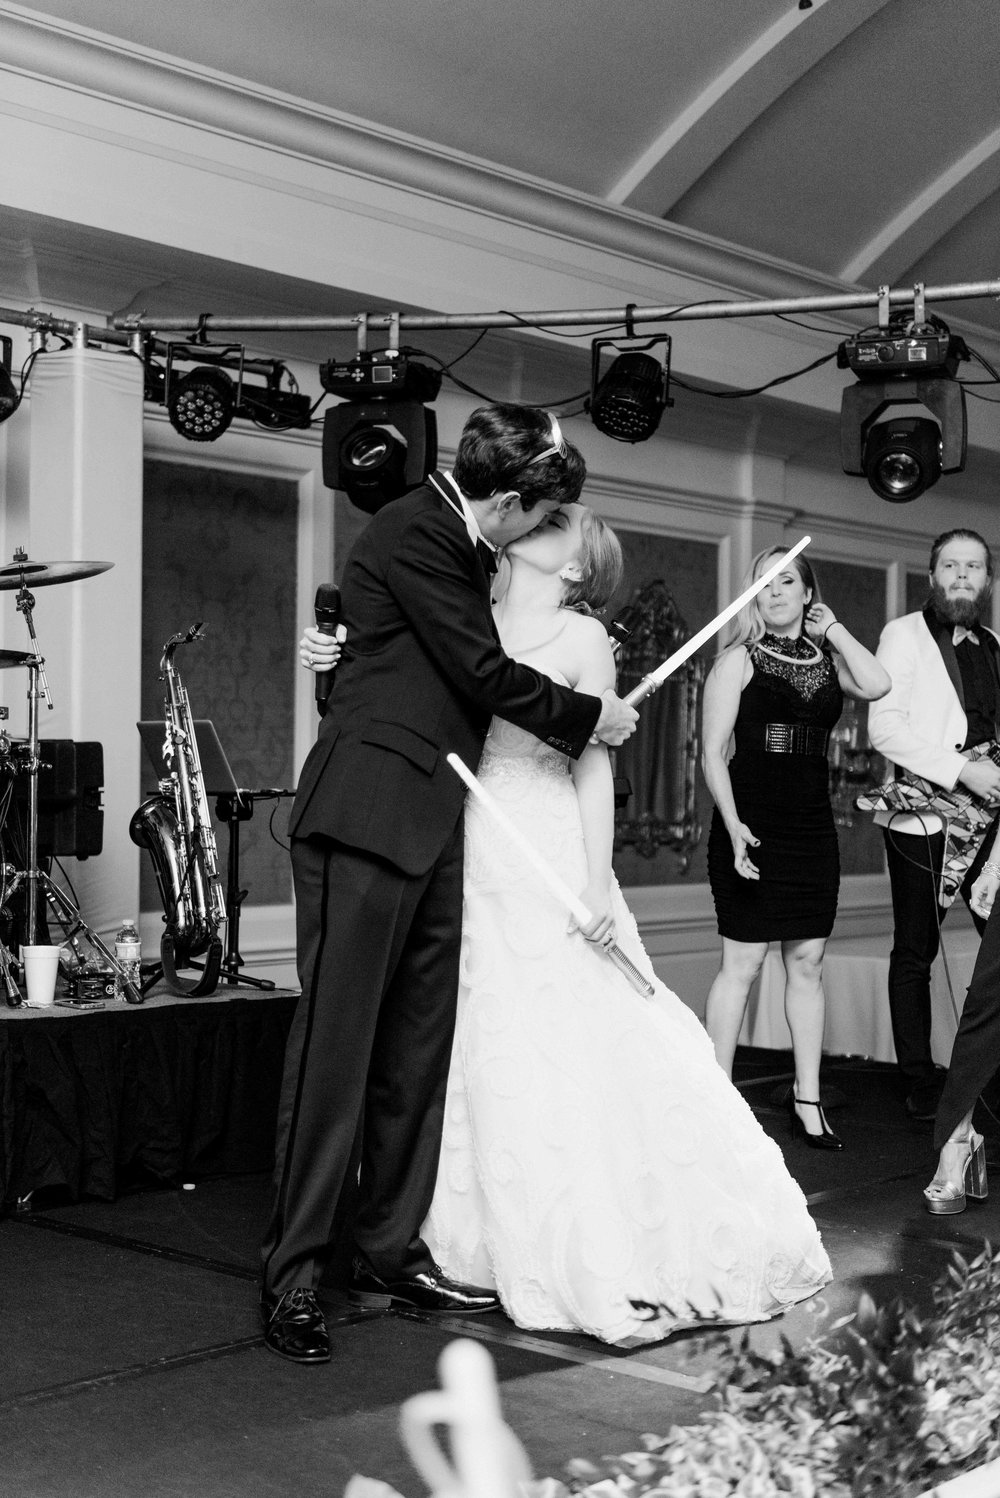 Fine-Art-Film-Houston-Wedding-Photographer-Best-Top-Luxury-Texas-Austin-Dallas-Destination-Dana-Fernandez-Photography-River-Oaks-Country-Club-South-Main-Baptist-Ceremony-Reception-Wedding-43.jpg